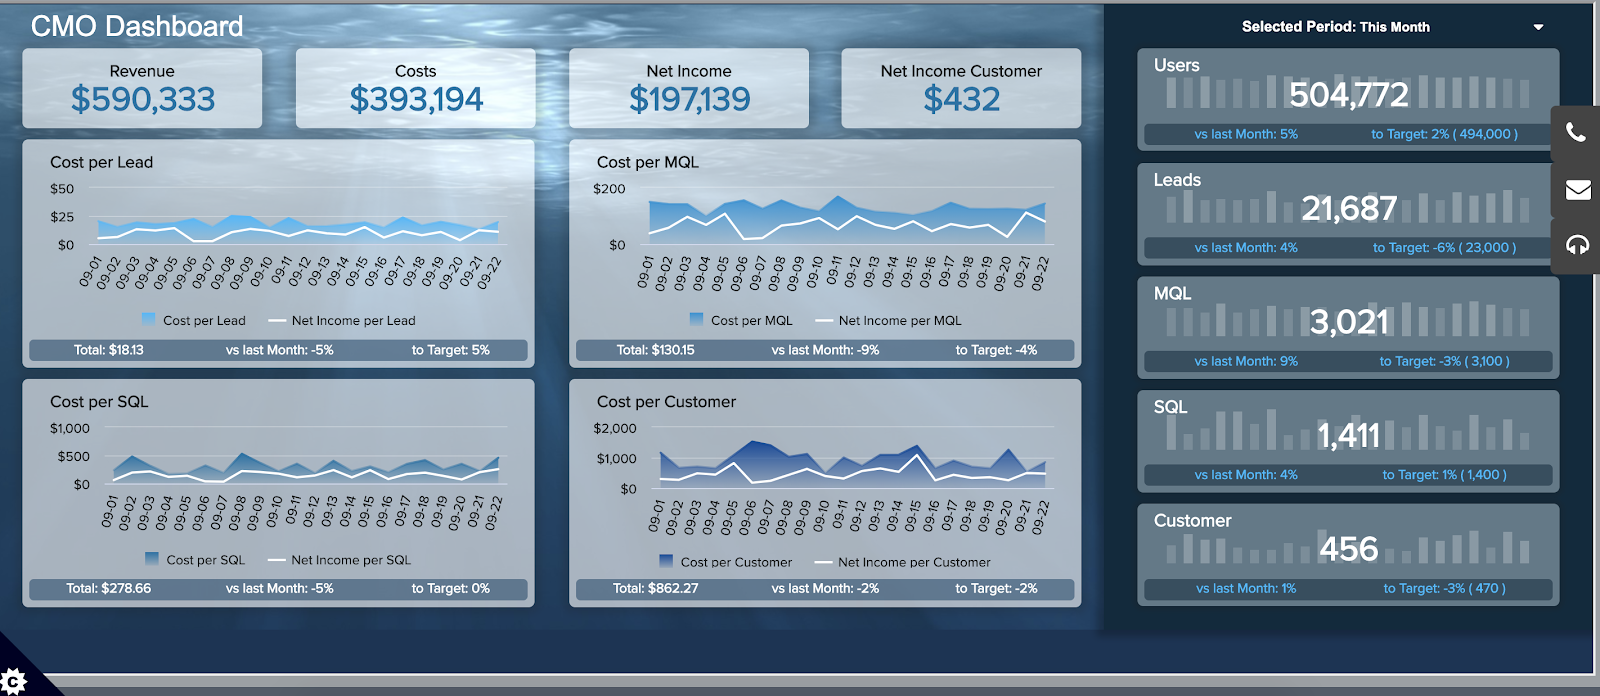 KPI Dashboards & How to Use Them in Your Marketing 2